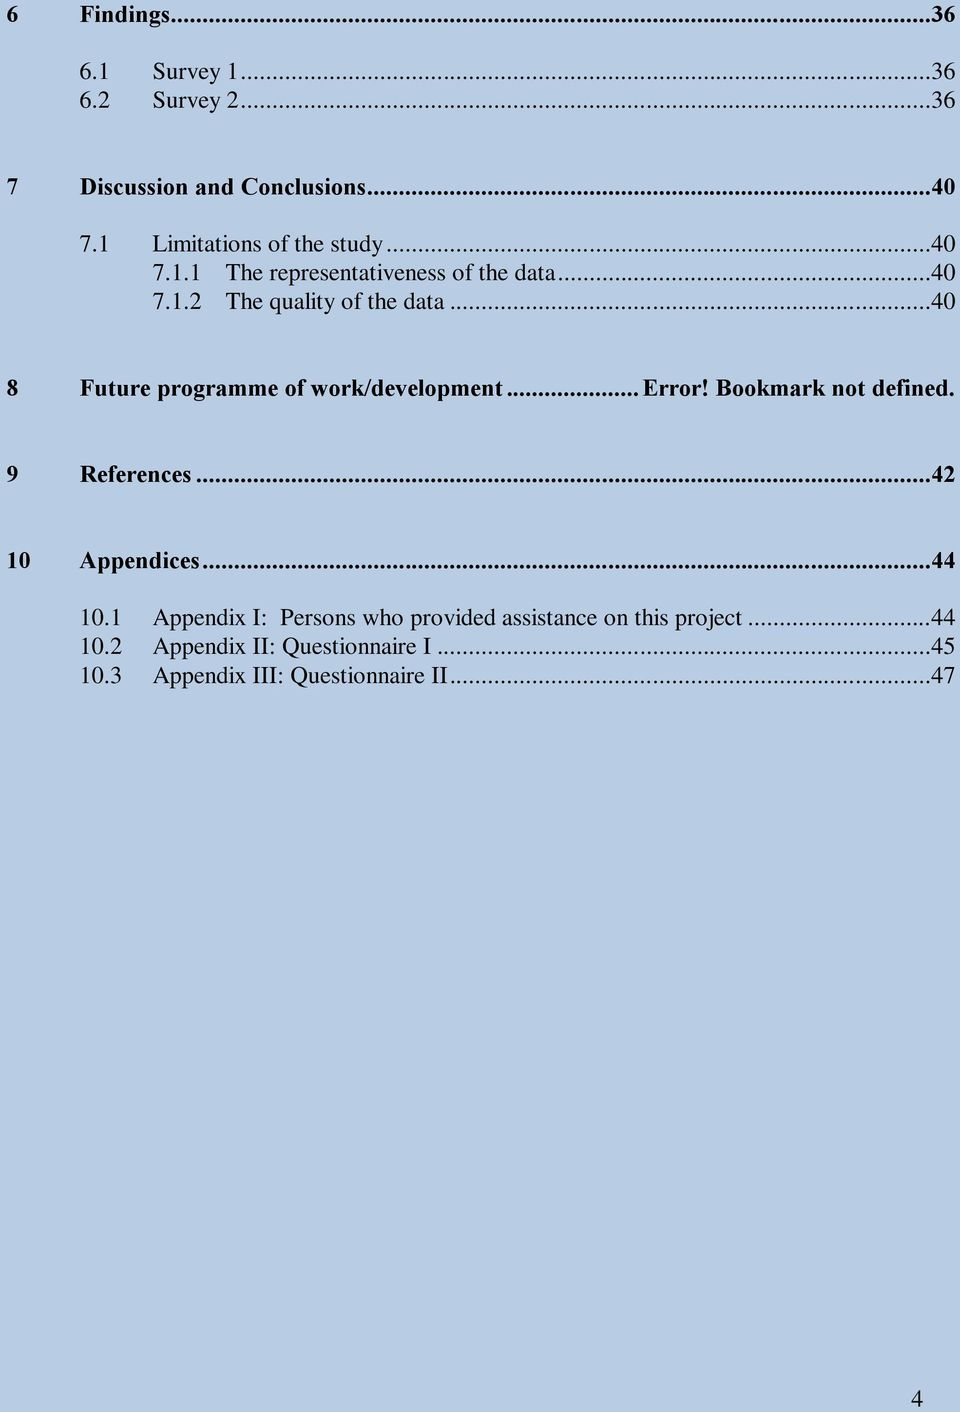 ..40 8 Future programme of work/development... Error! Bookmark not defined. 9 References...42 10 Appendices...44 10.